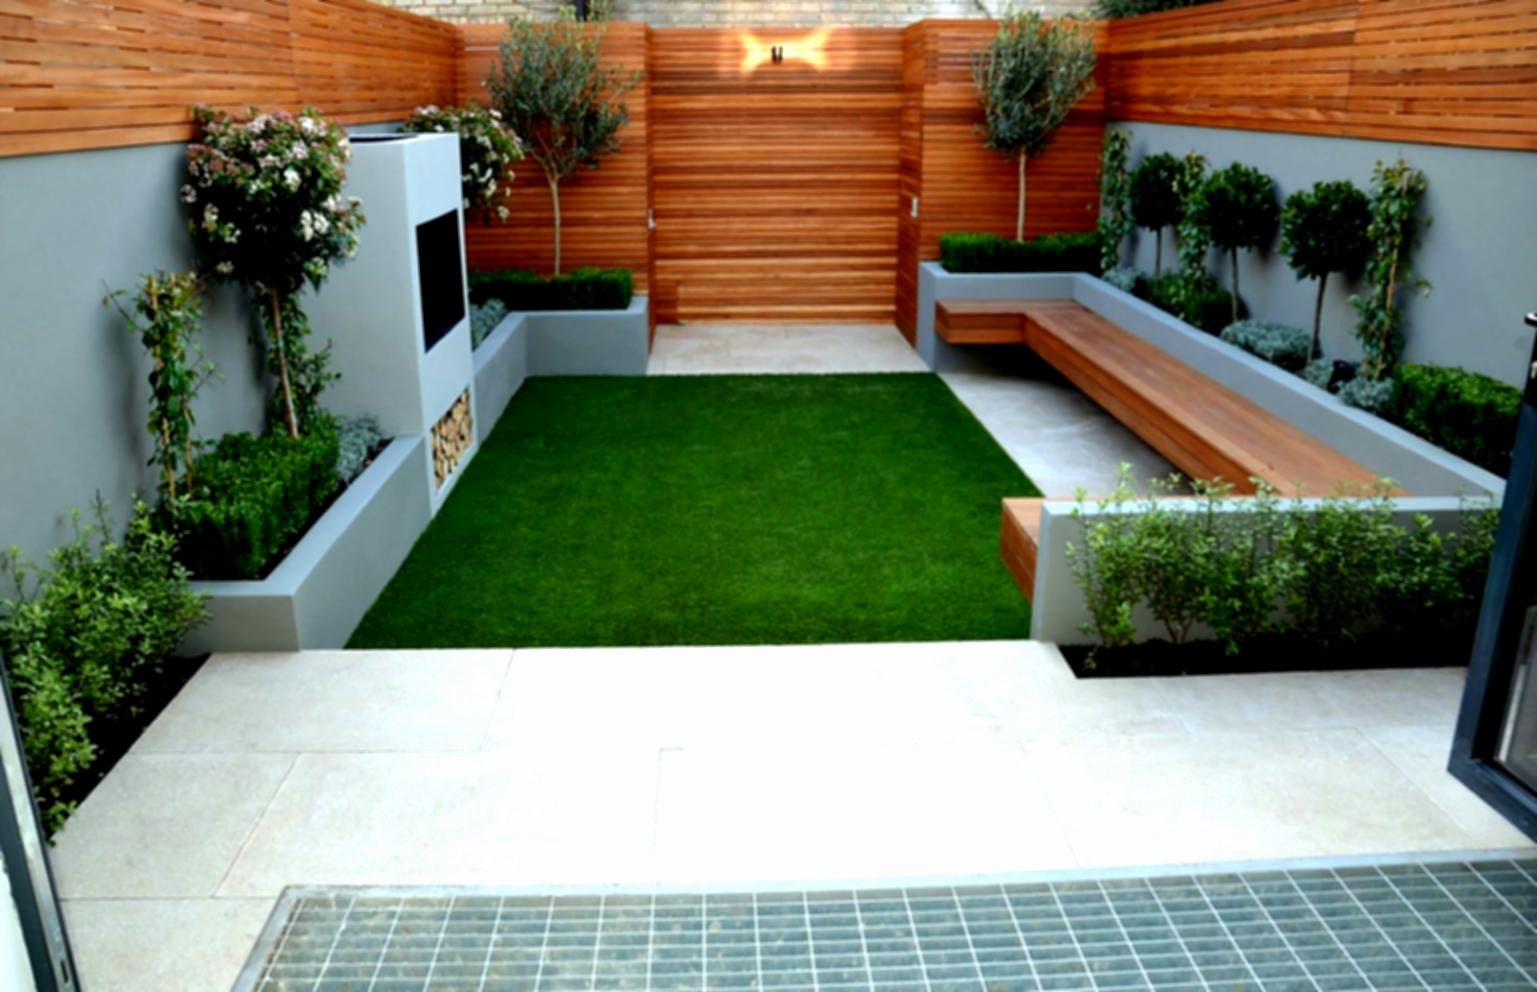 Landscaping Ideas For Large Backyards Australia Landscaping Ideas For A Backyard Backyard Remodel Large Backyard Landscaping Easy Backyard